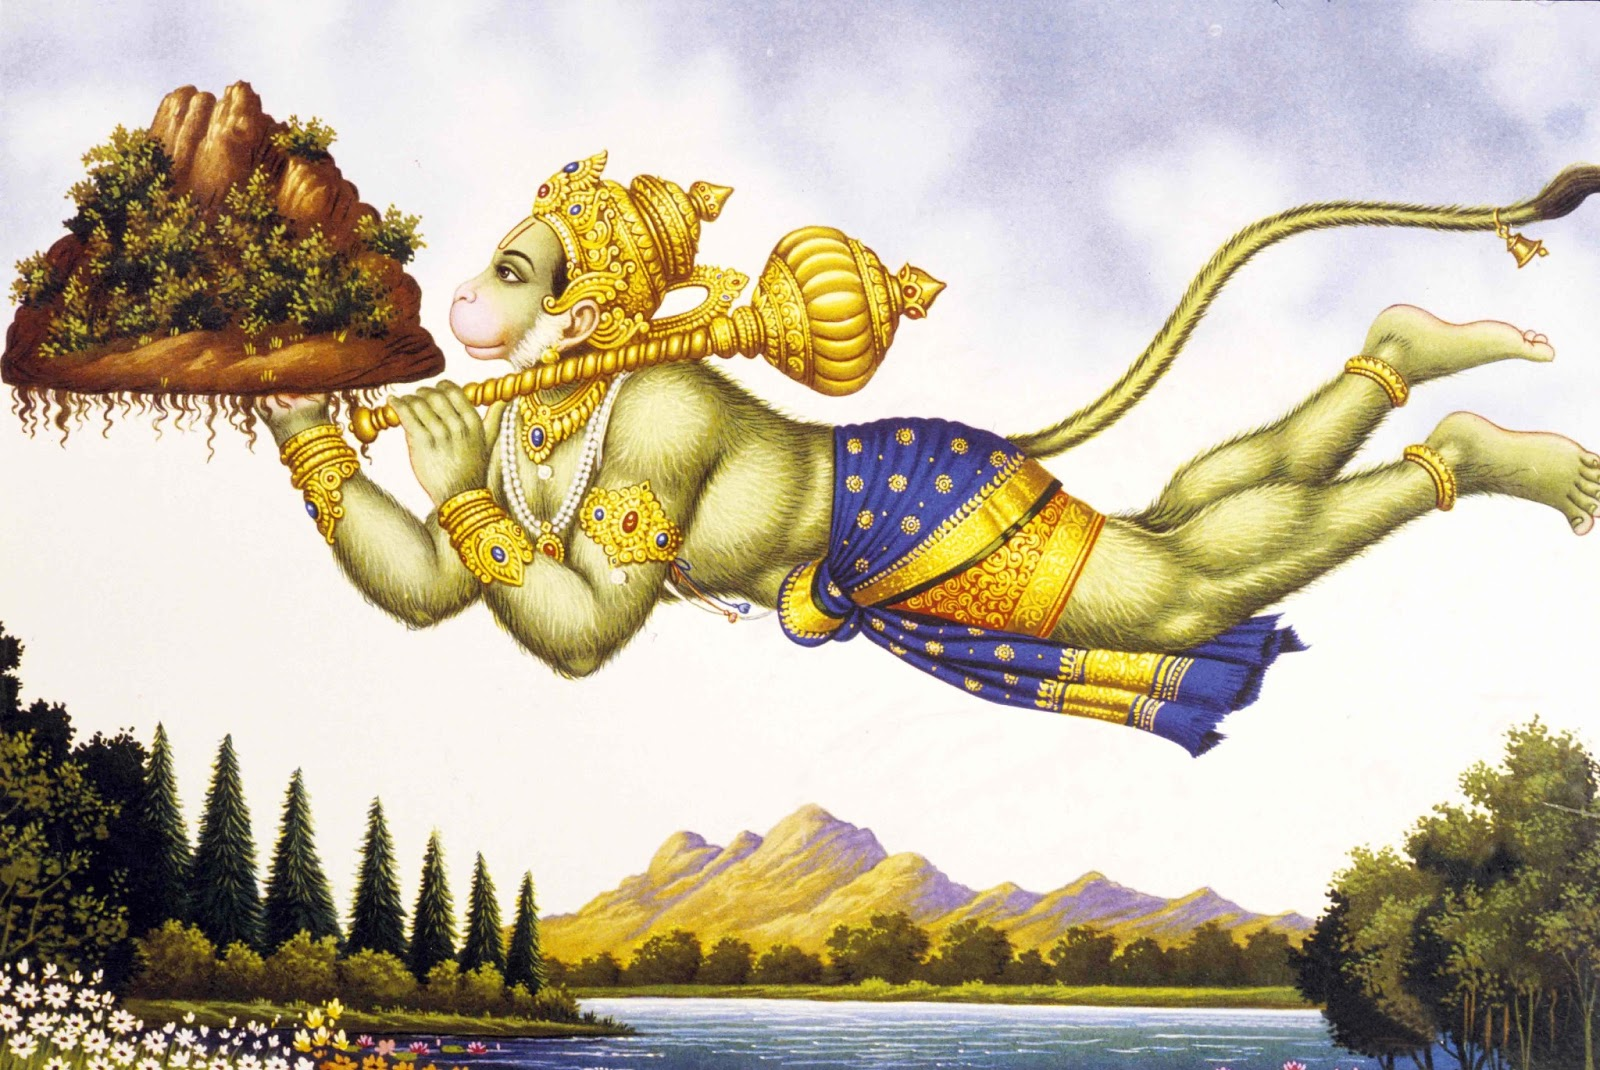 http://1.bp.blogspot.com/-e_L2vuUZup8/UP_0KEAdxlI/AAAAAAAAIsU/o50awj1owNw/s1600/hanuman+flying+hd+wallpaper.jpg